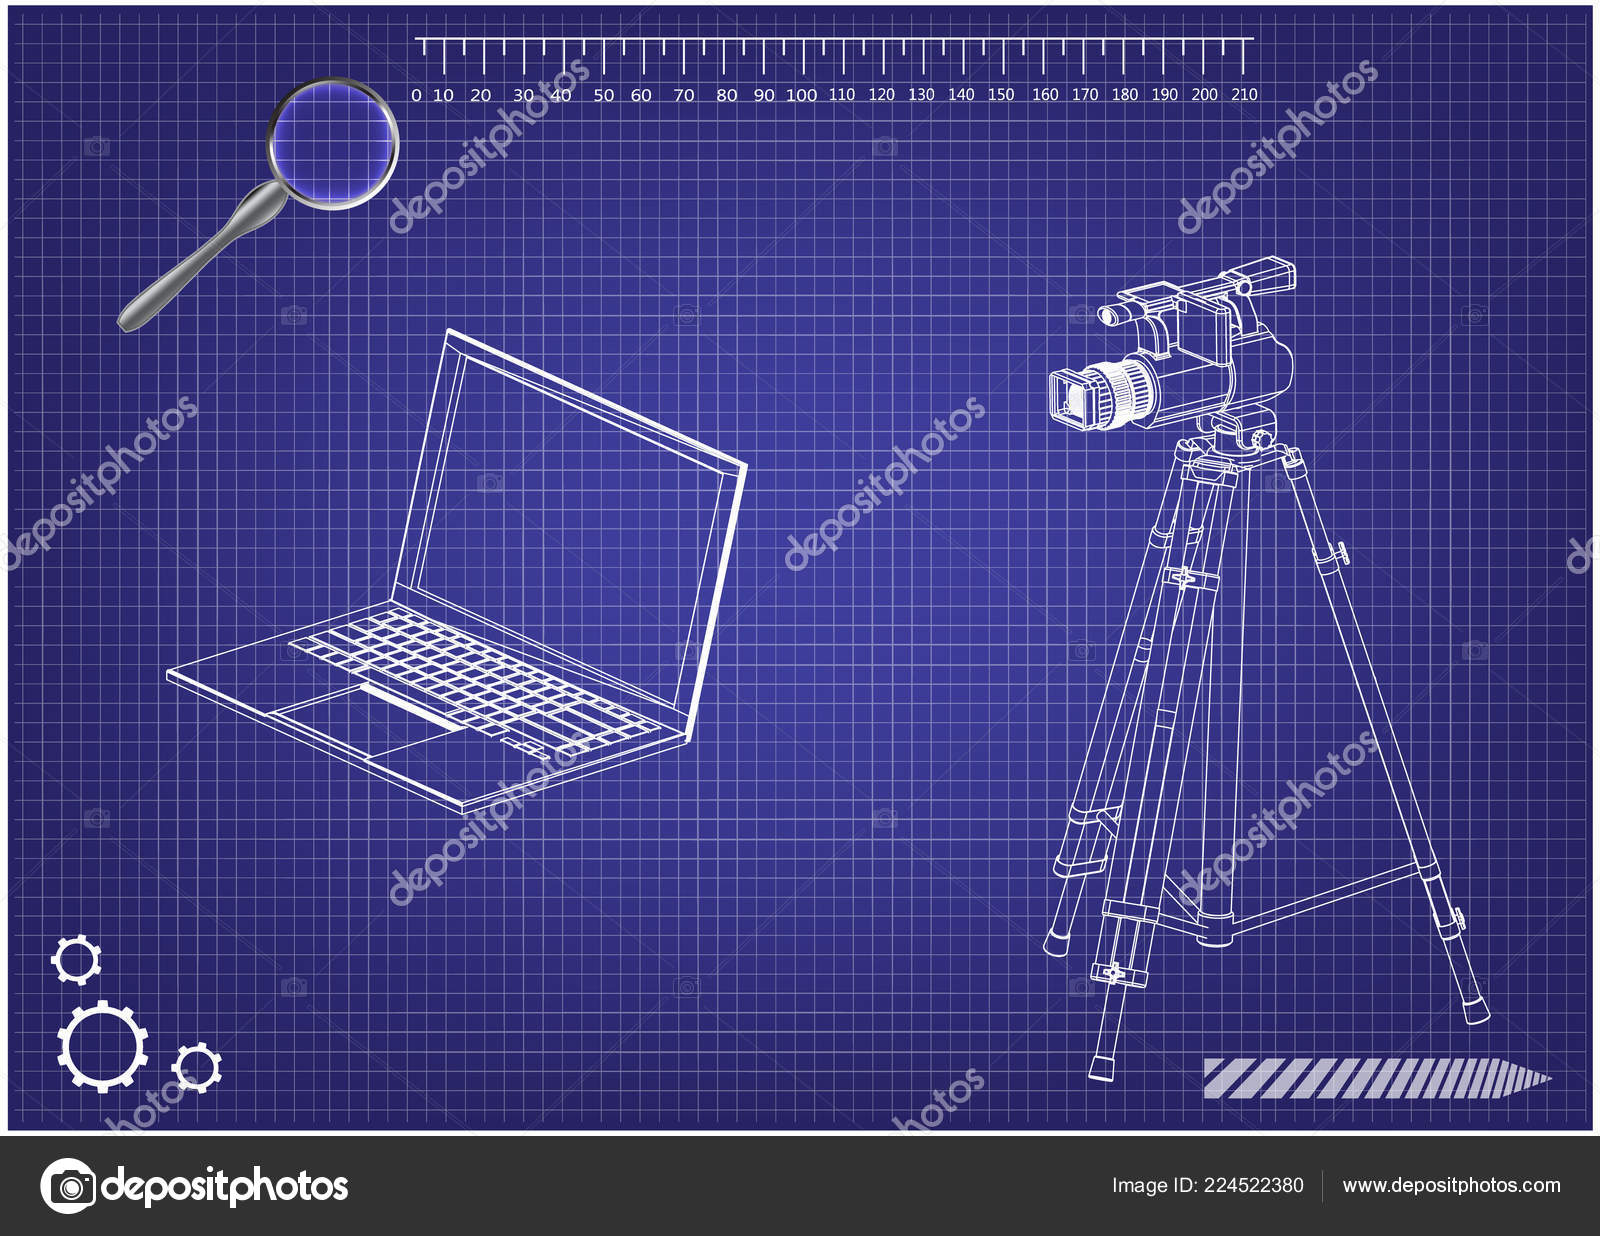 hight resolution of 3d model of laptop and camcorder with a tripod stock vector lego instrutions laptop camcorder laptop diagram